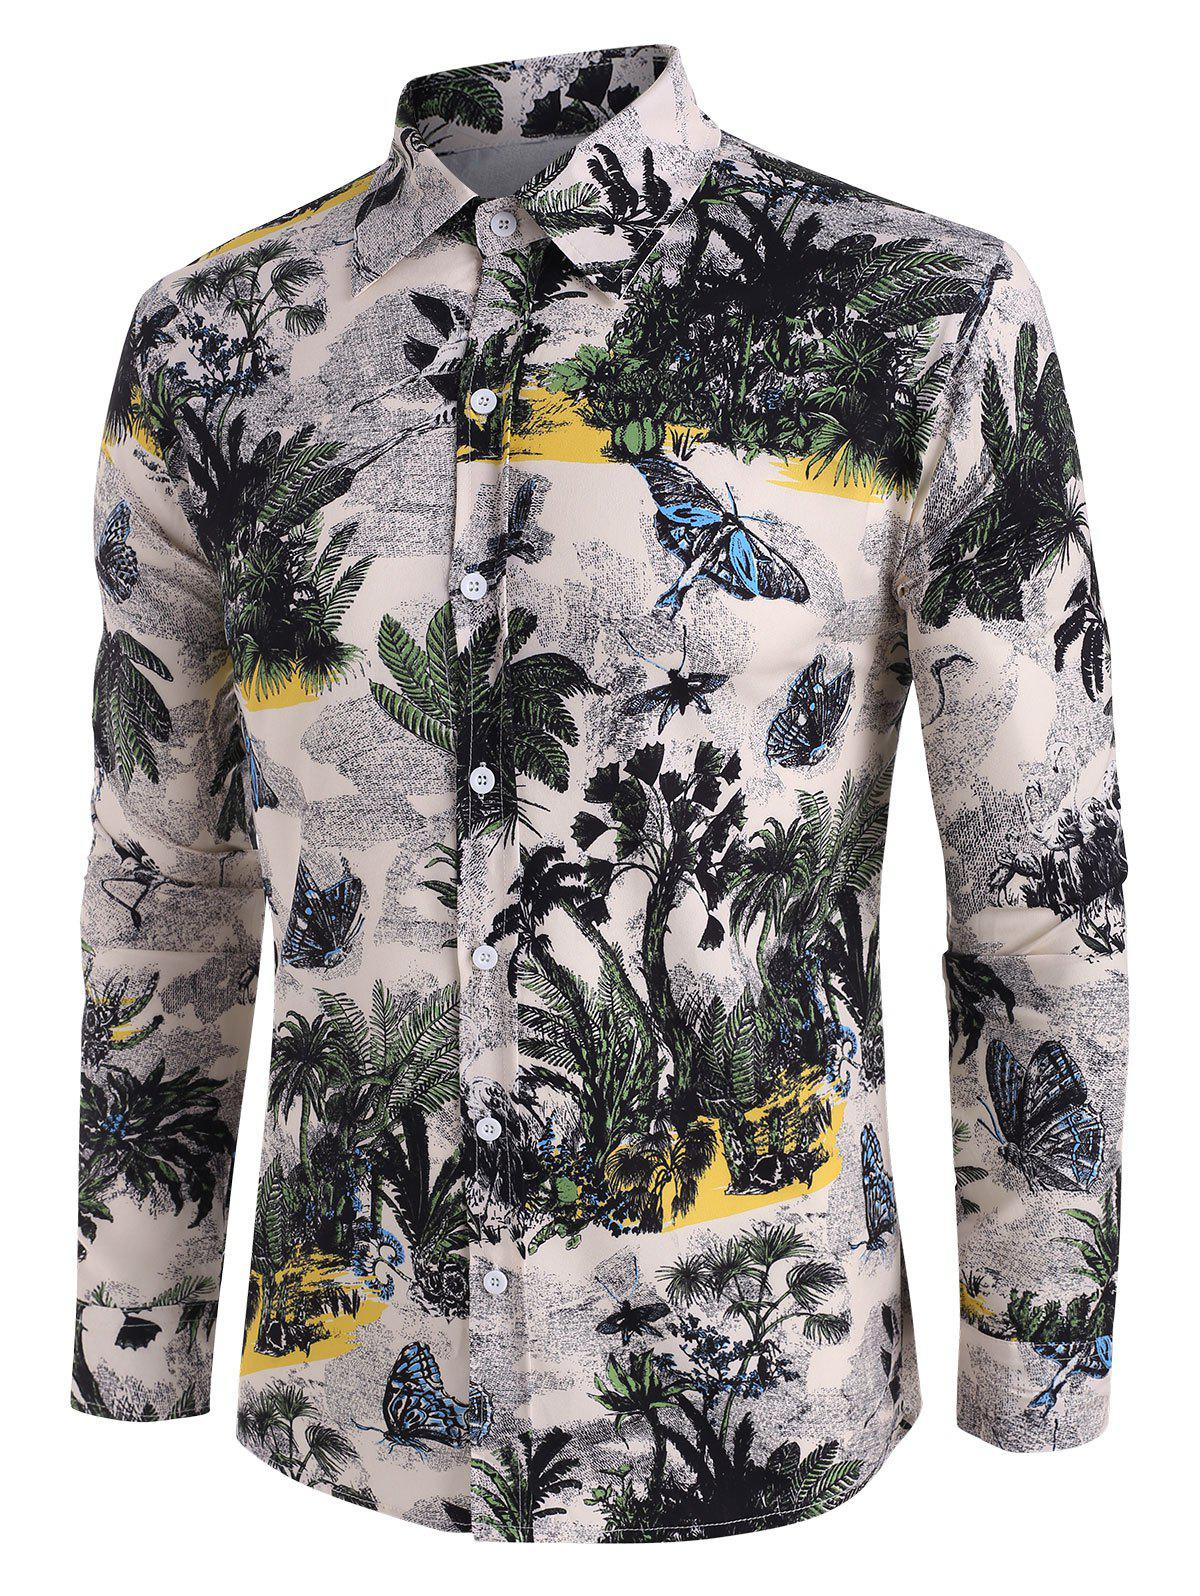 Trendy Palm Tree Butterfly Print Button Up Casual Shirt